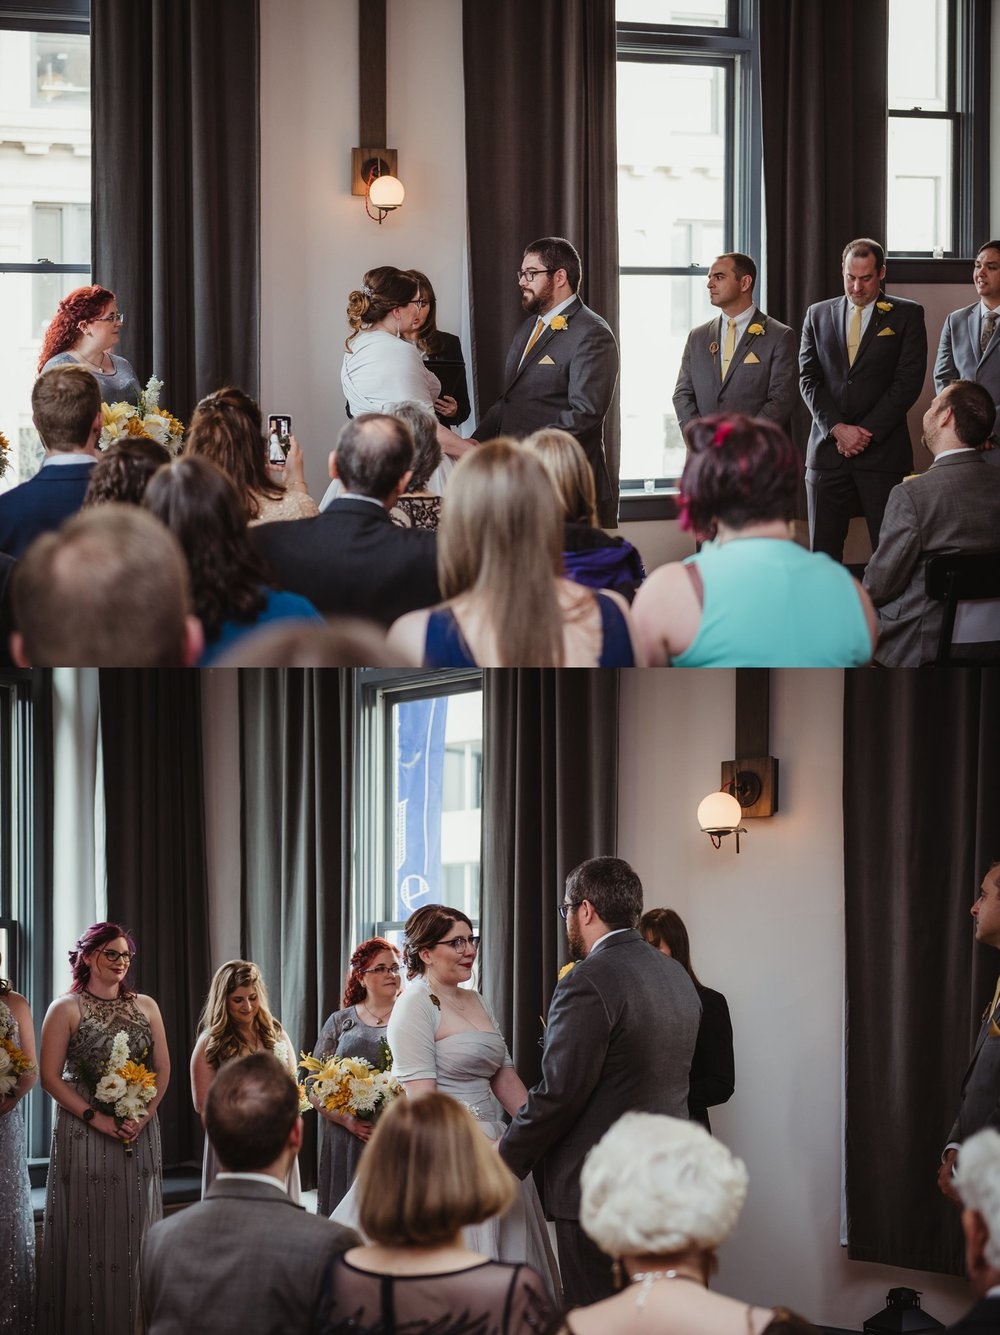 The bride and groom look at each other during their vows at their wedding ceremony at The Bridge Club in Raleigh, NC, picture by Rose Trail Images.